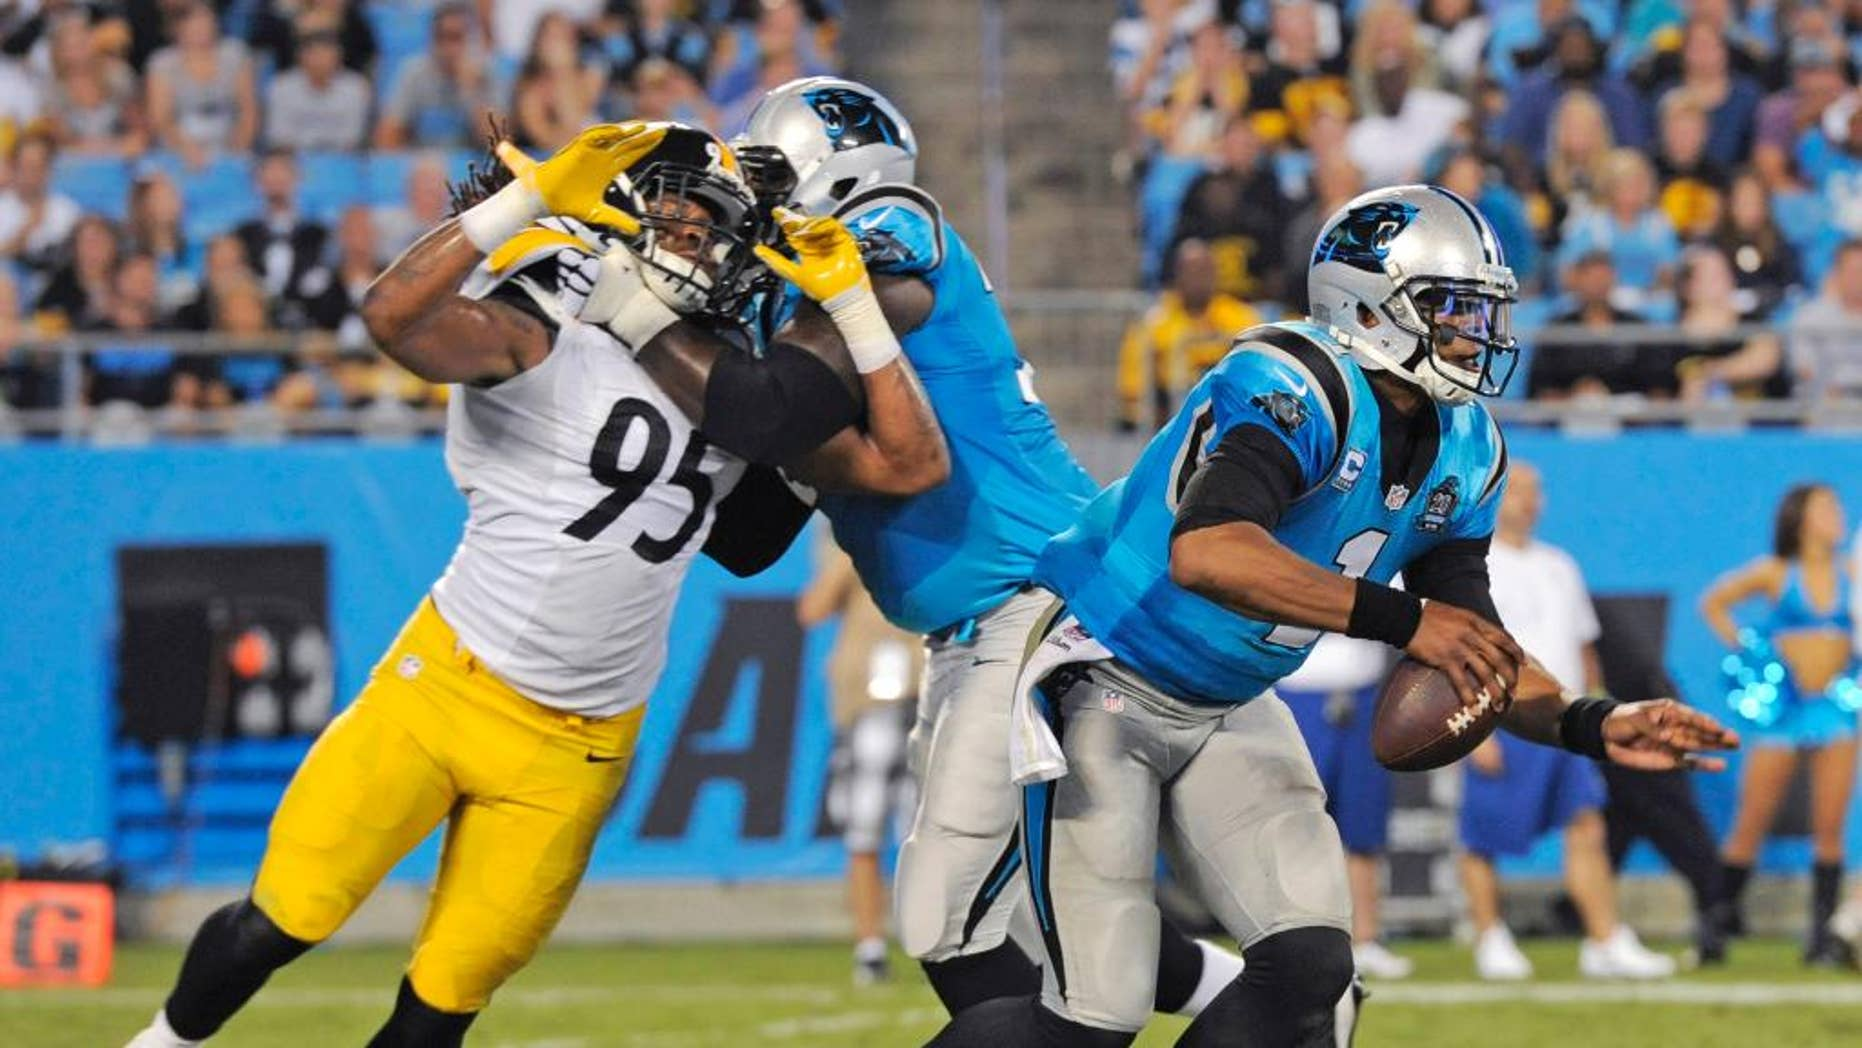 Carolina Panthers' Cam Newton (1) scrambles past Pittsburgh Steelers' Jarvis Jones (95) during the second half of an NFL football game in Charlotte, N.C., Sunday, Sept. 21, 2014. (AP Photo/Mike McCarn)